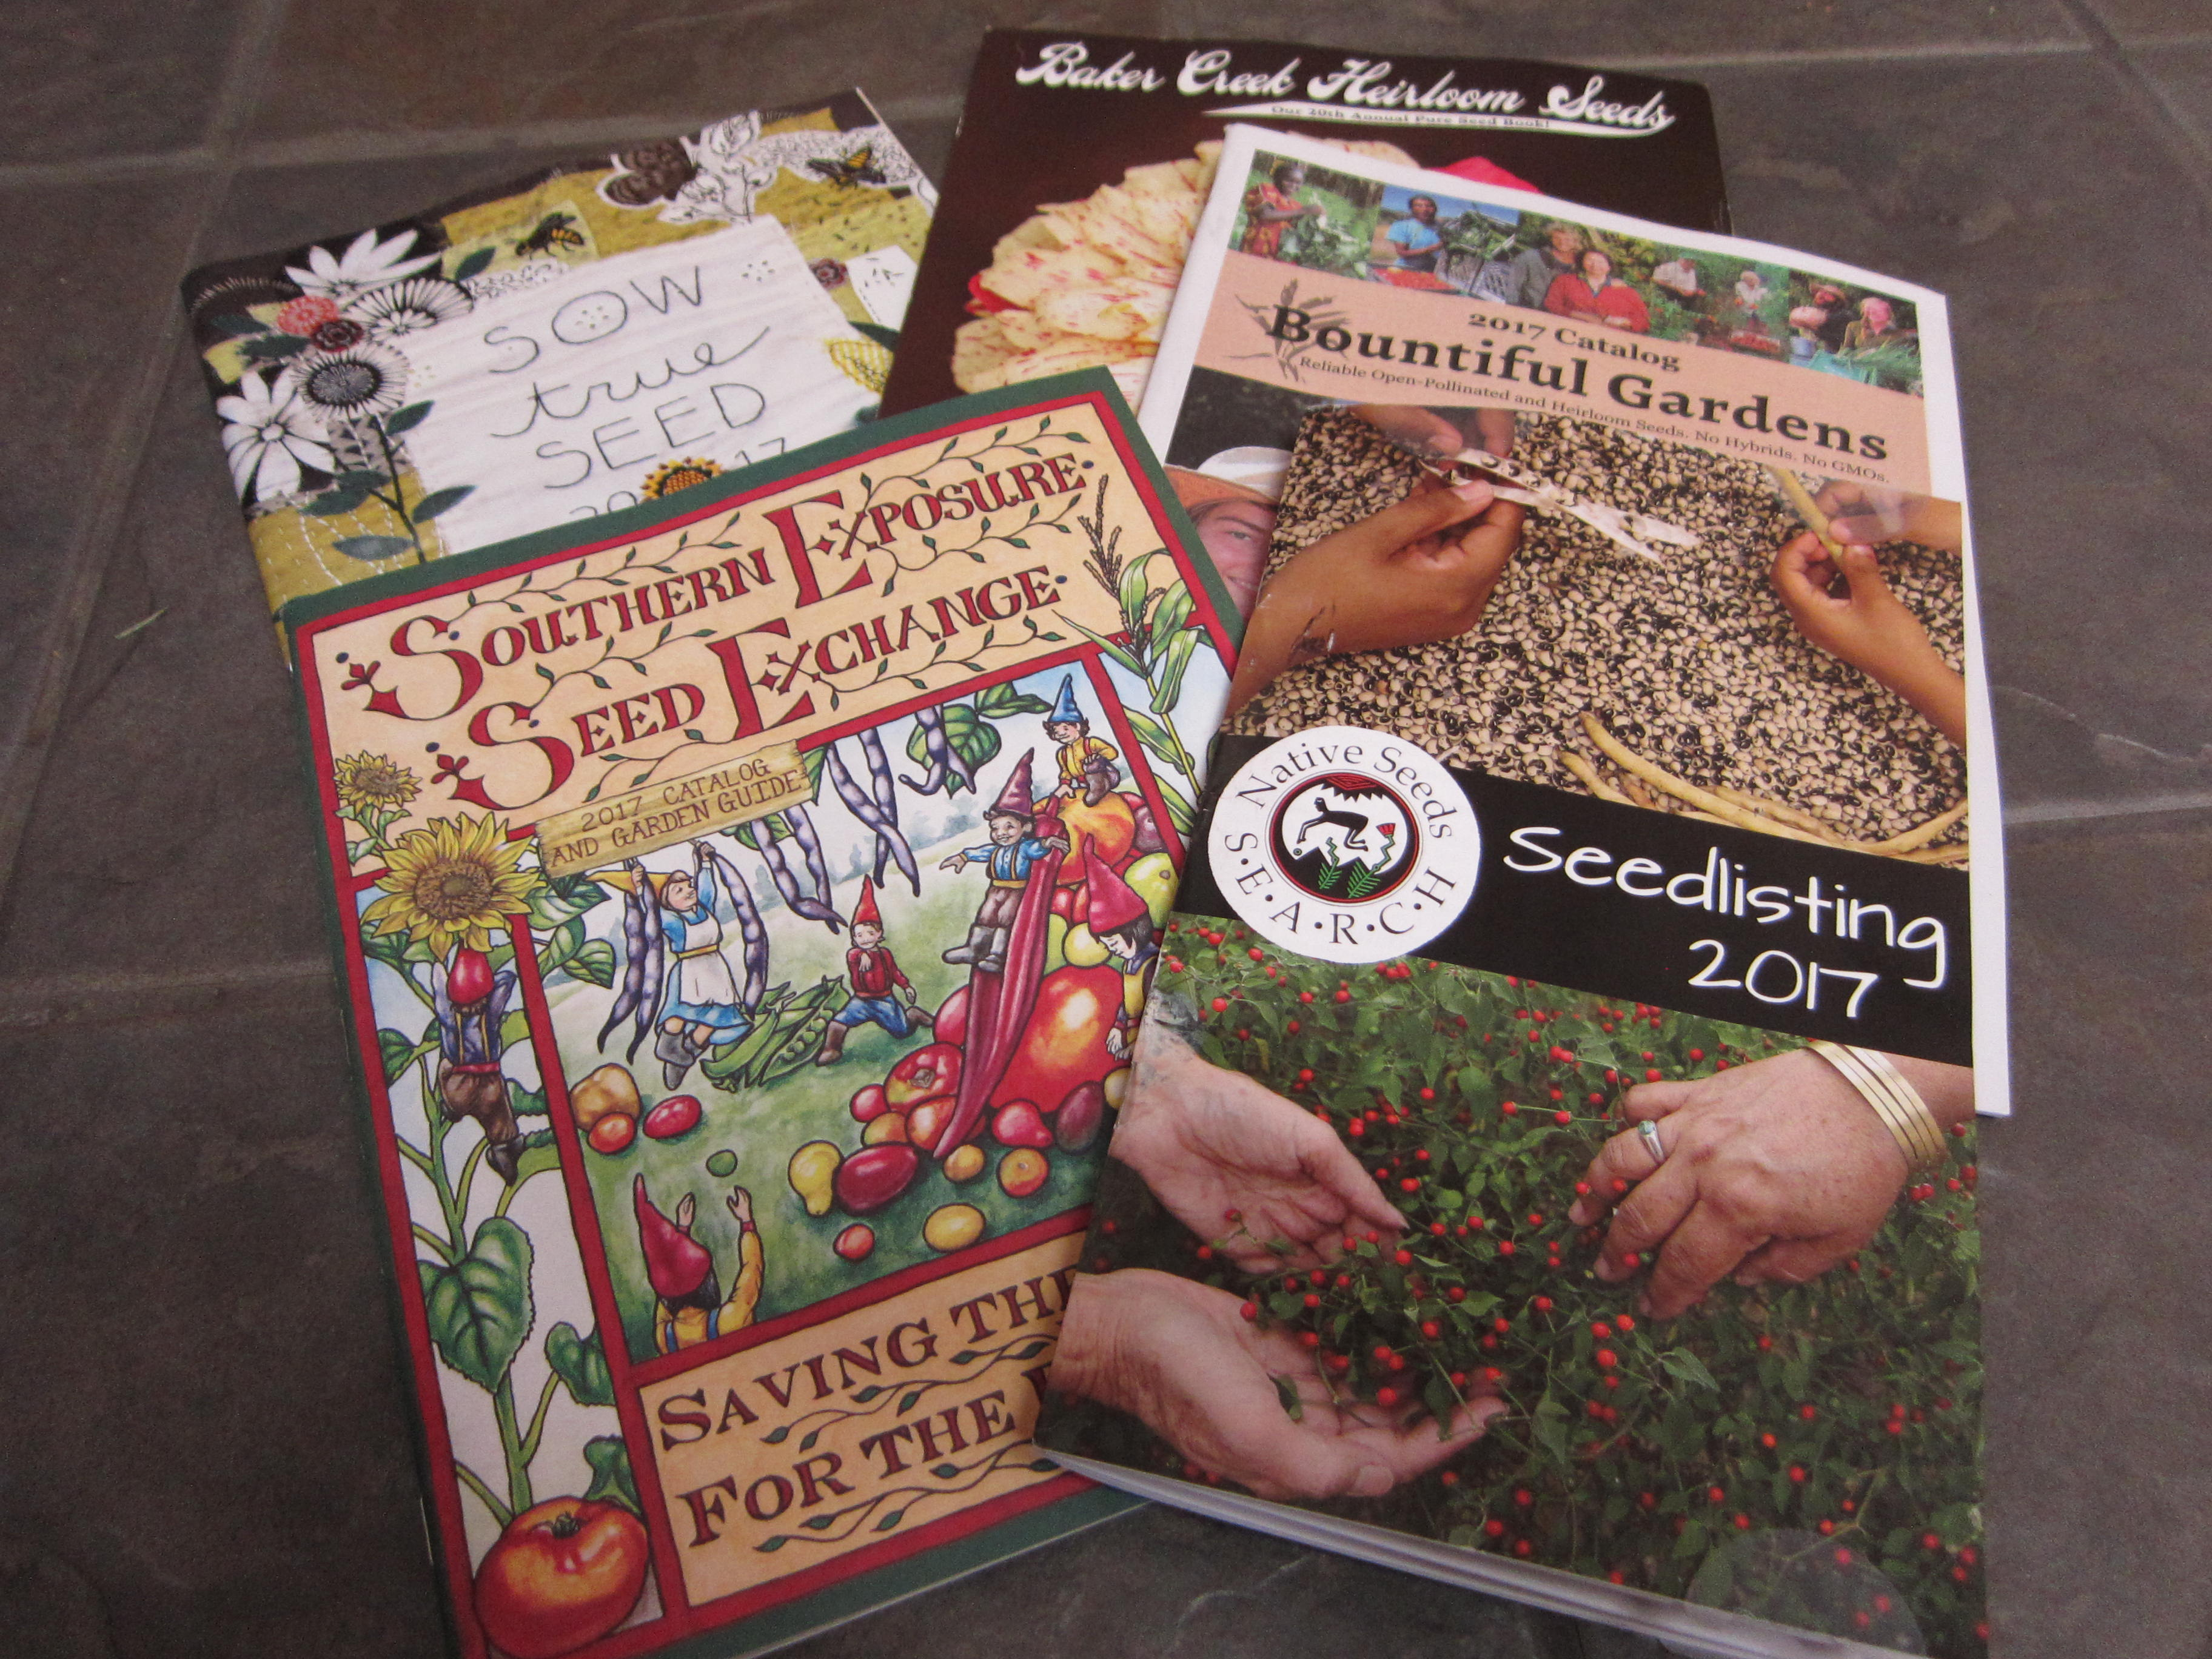 Some of our favorite seed catalogs have already arrived.